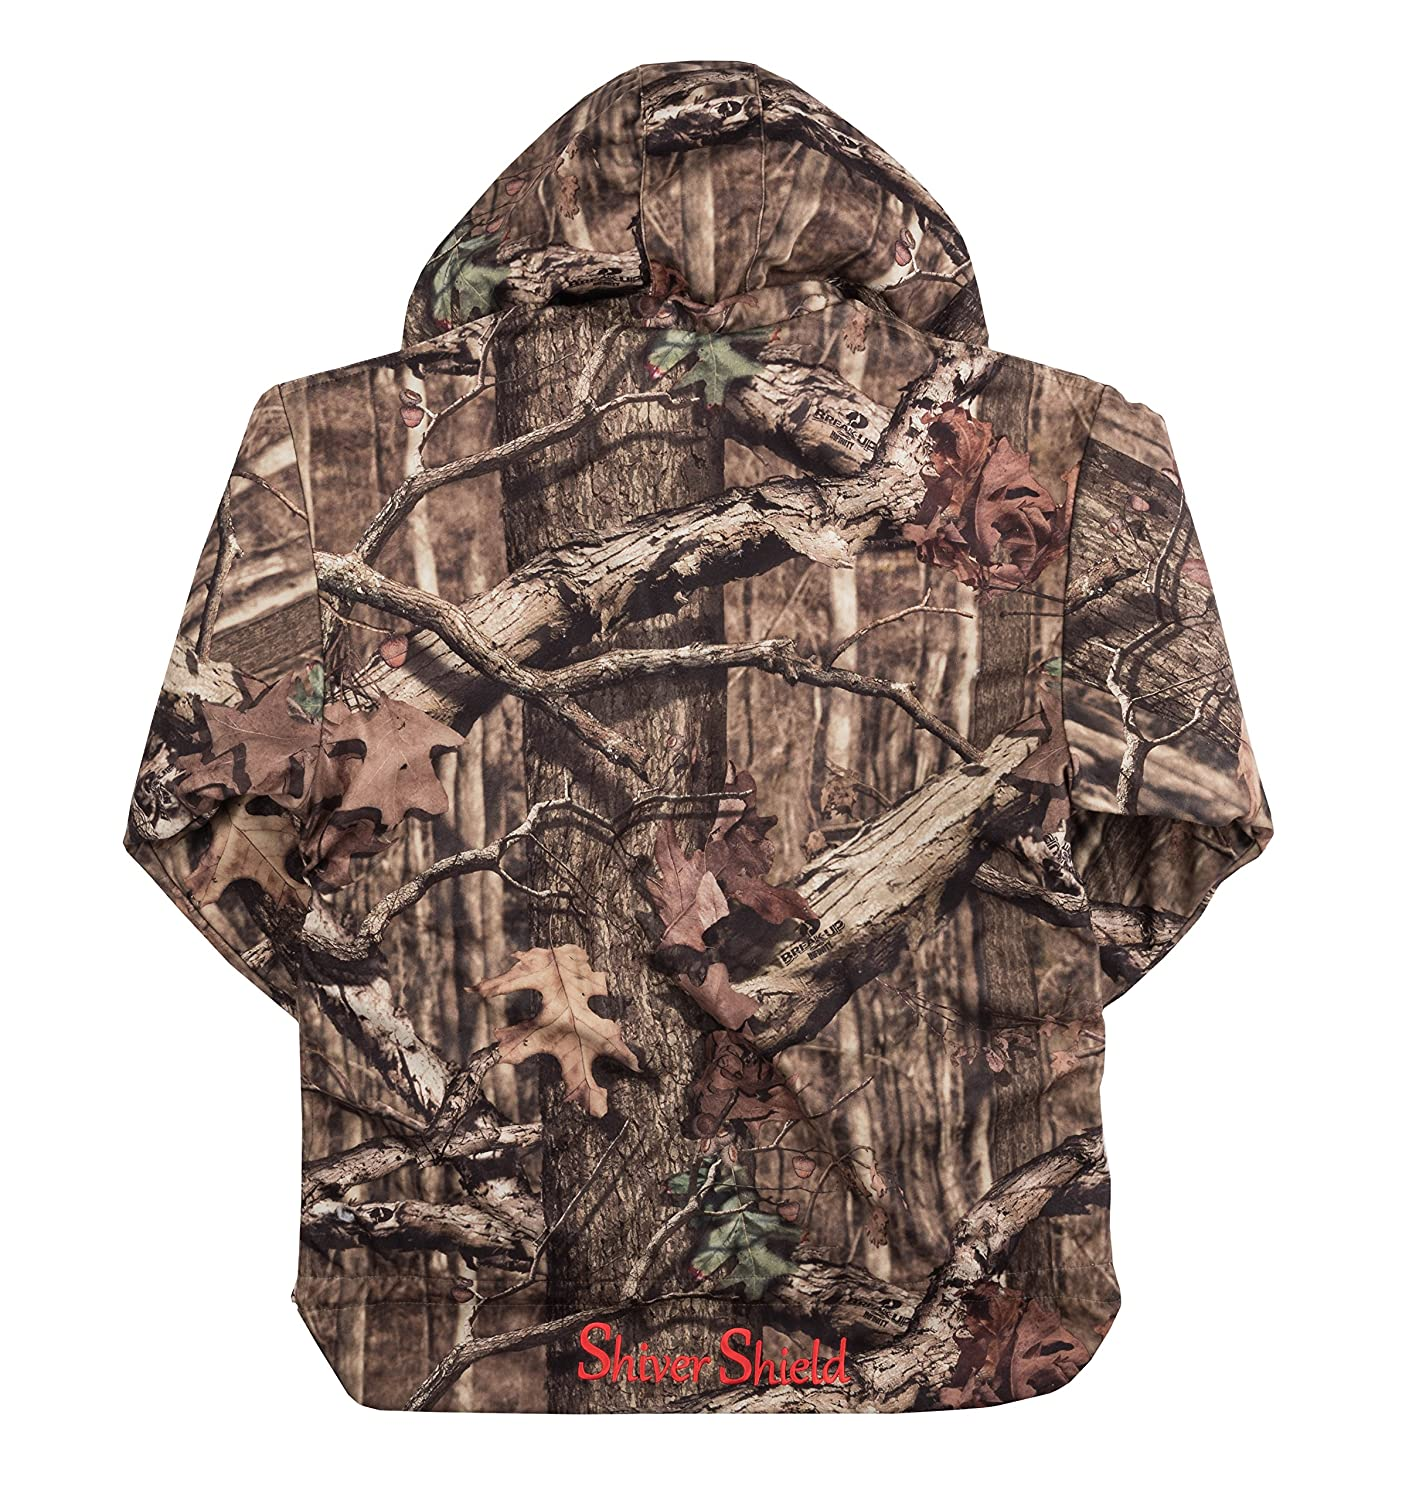 04cb3b75cfbaf Amazon.com : Shiver Shield Men's Insulated Hunt Jacket for Extreme Cold  Temperatures- Camo : Sports & Outdoors